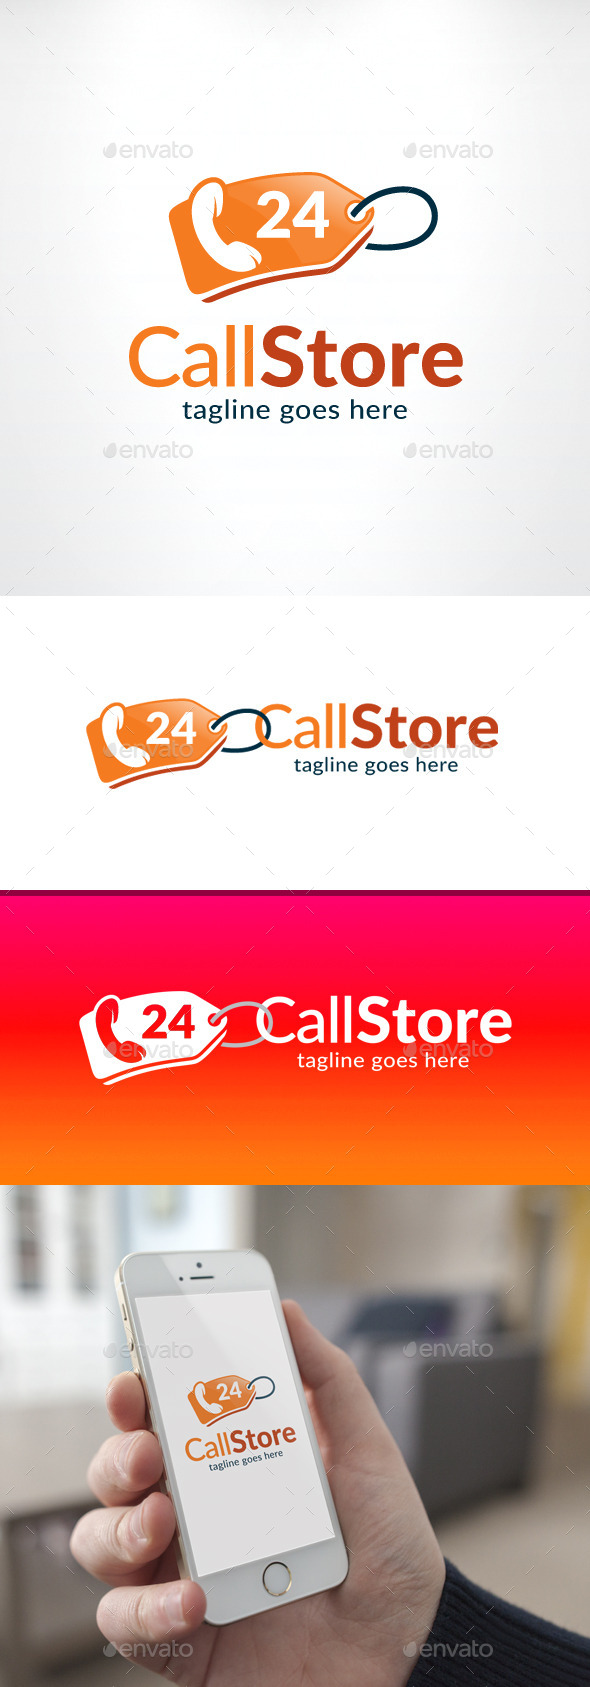 Call Store 24 Hours Logo - Objects Logo Templates